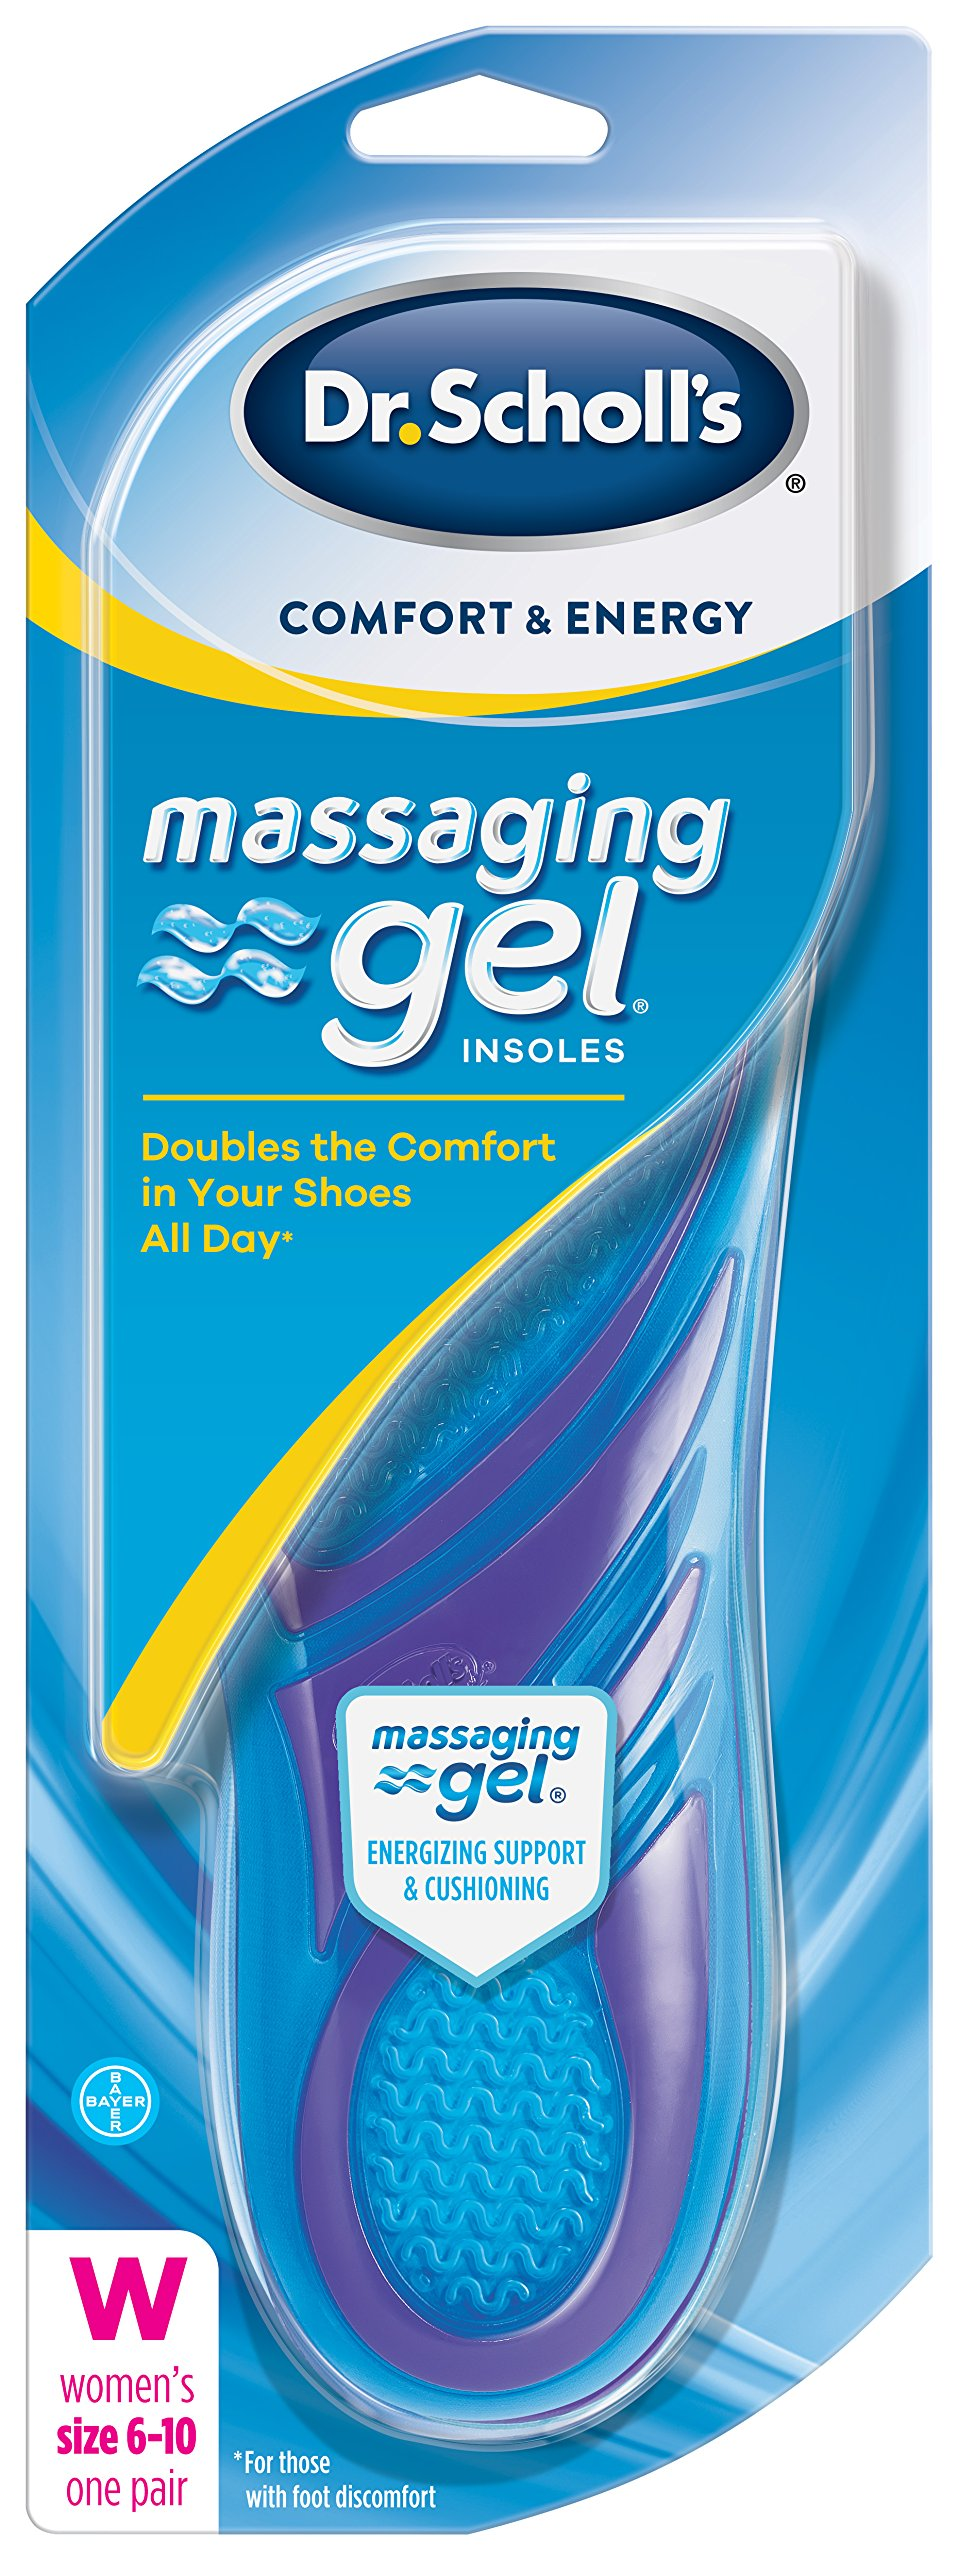 Dr. Scholl's Comfort and Energy Massaging Gel Insoles for Women, 1 Pair, Size 6-10